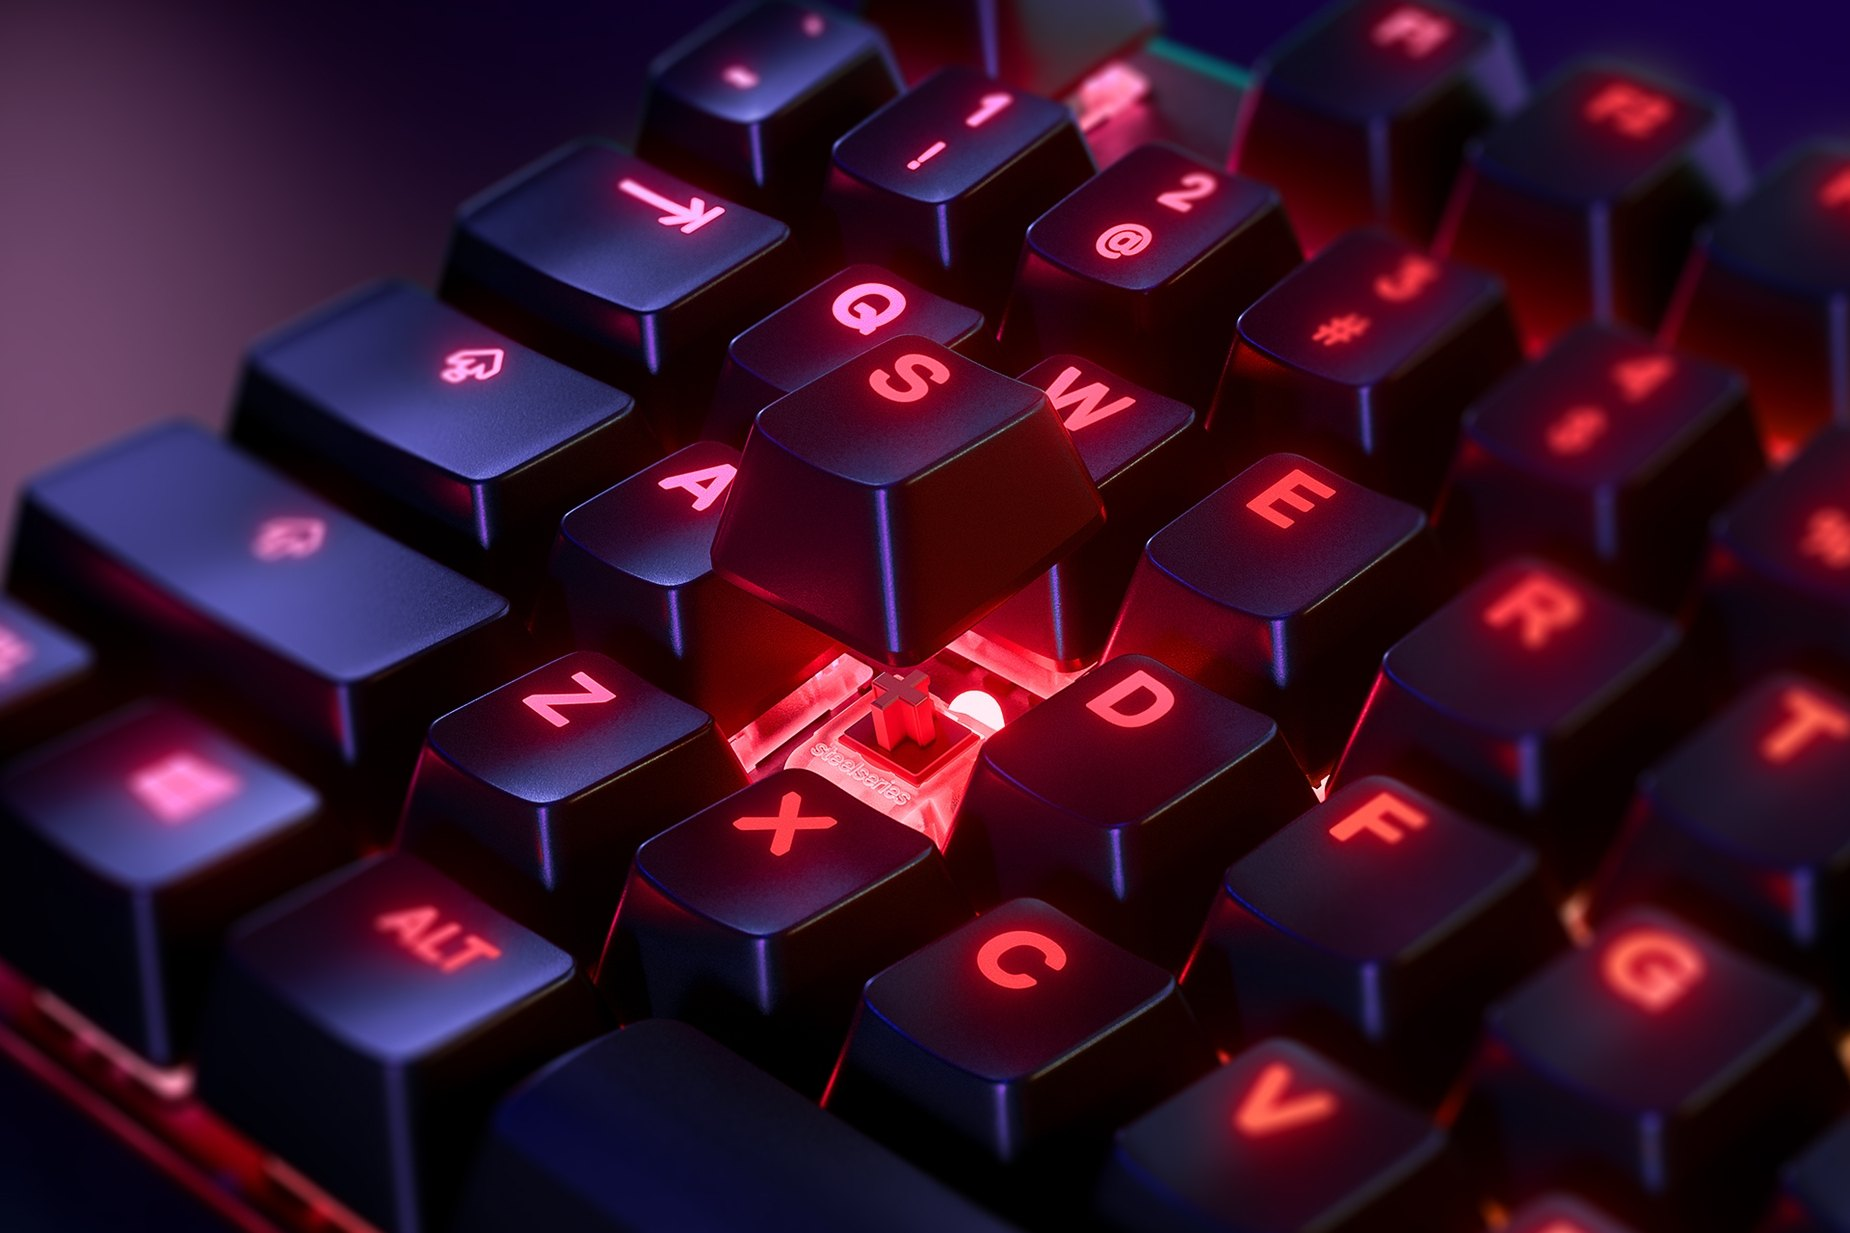 Zoomed in view of a single key on the US English - Apex 7 TKL (Kırmızı Anahtar) gaming keyboard, the key is raised up to show the SteelSeries QX2 Mechanical RGB Switch underneath